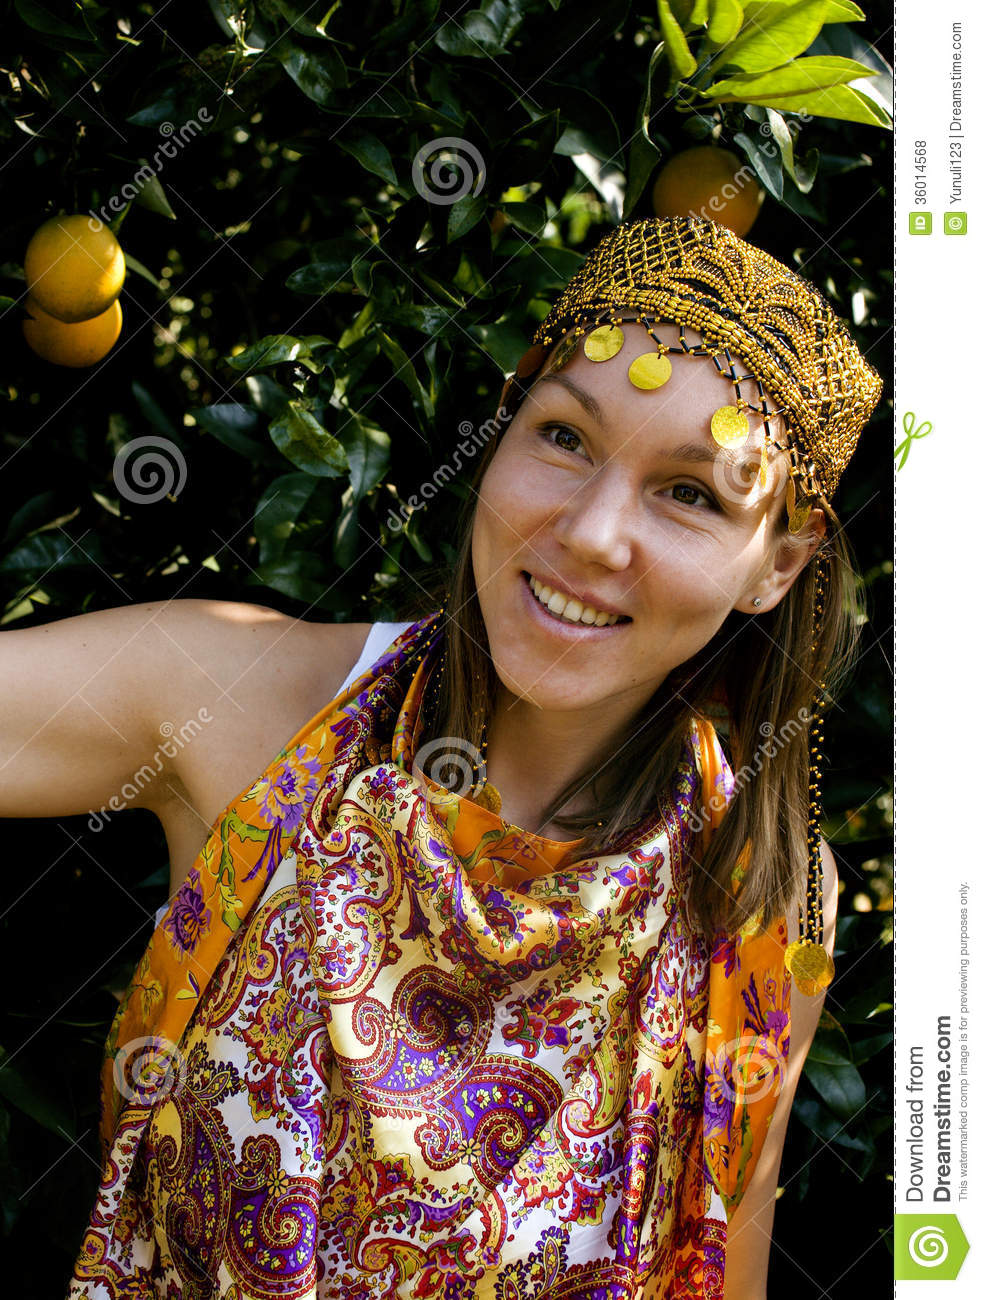 orange grove muslim single women Download the royalty-free photo pretty islam woman in orange grove smiling, real muslim girl che created by person picking posing season single smiling.